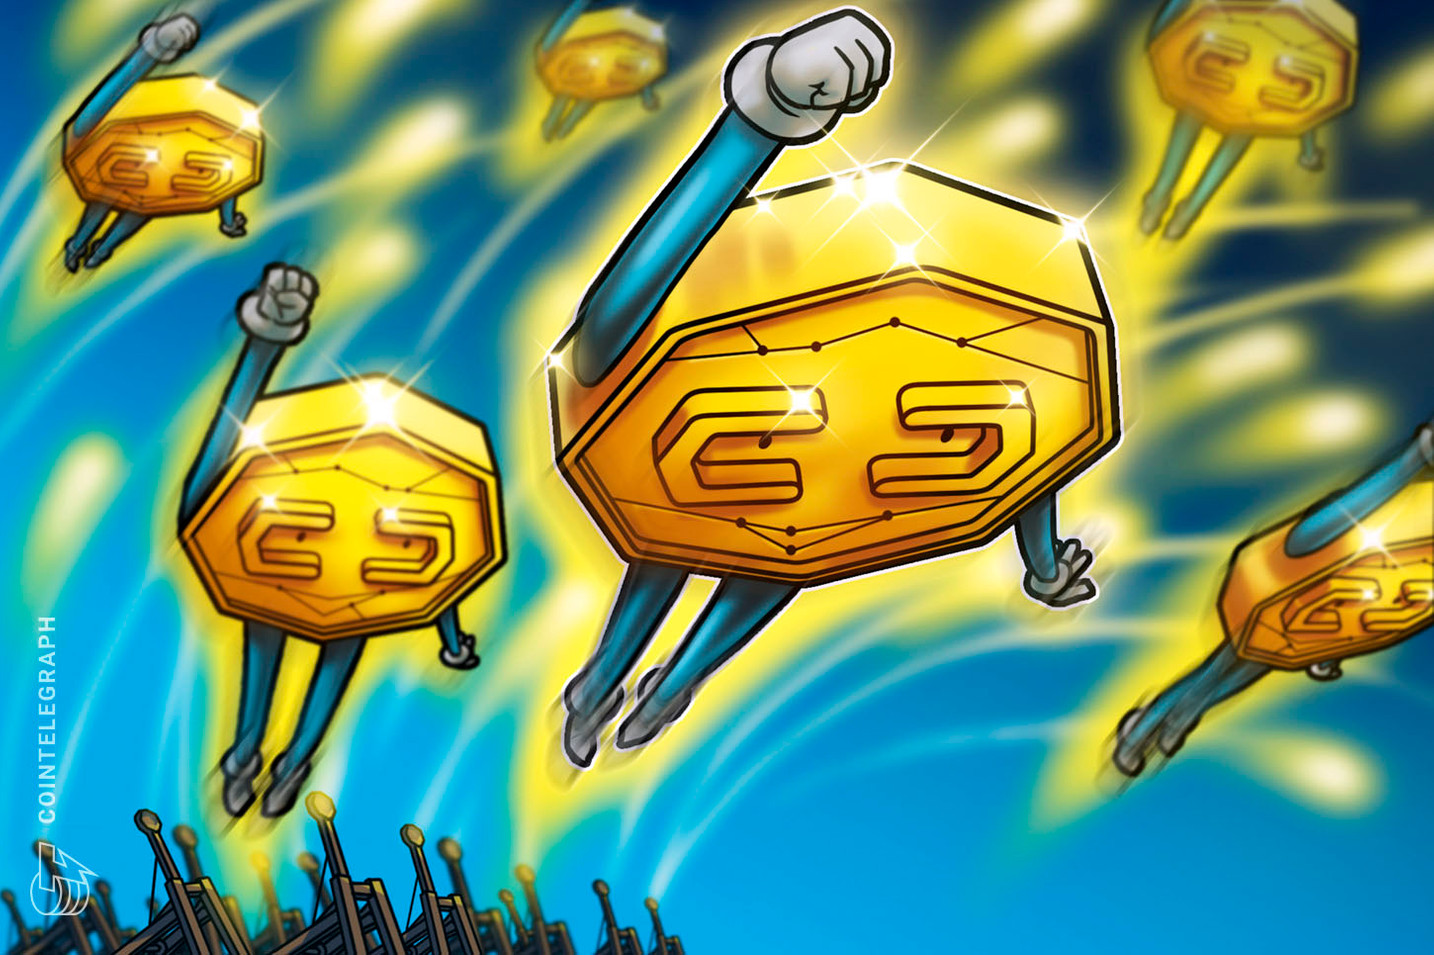 Golem (GLM) price rallies 230% to hit a 3-year high after protocol upgrade